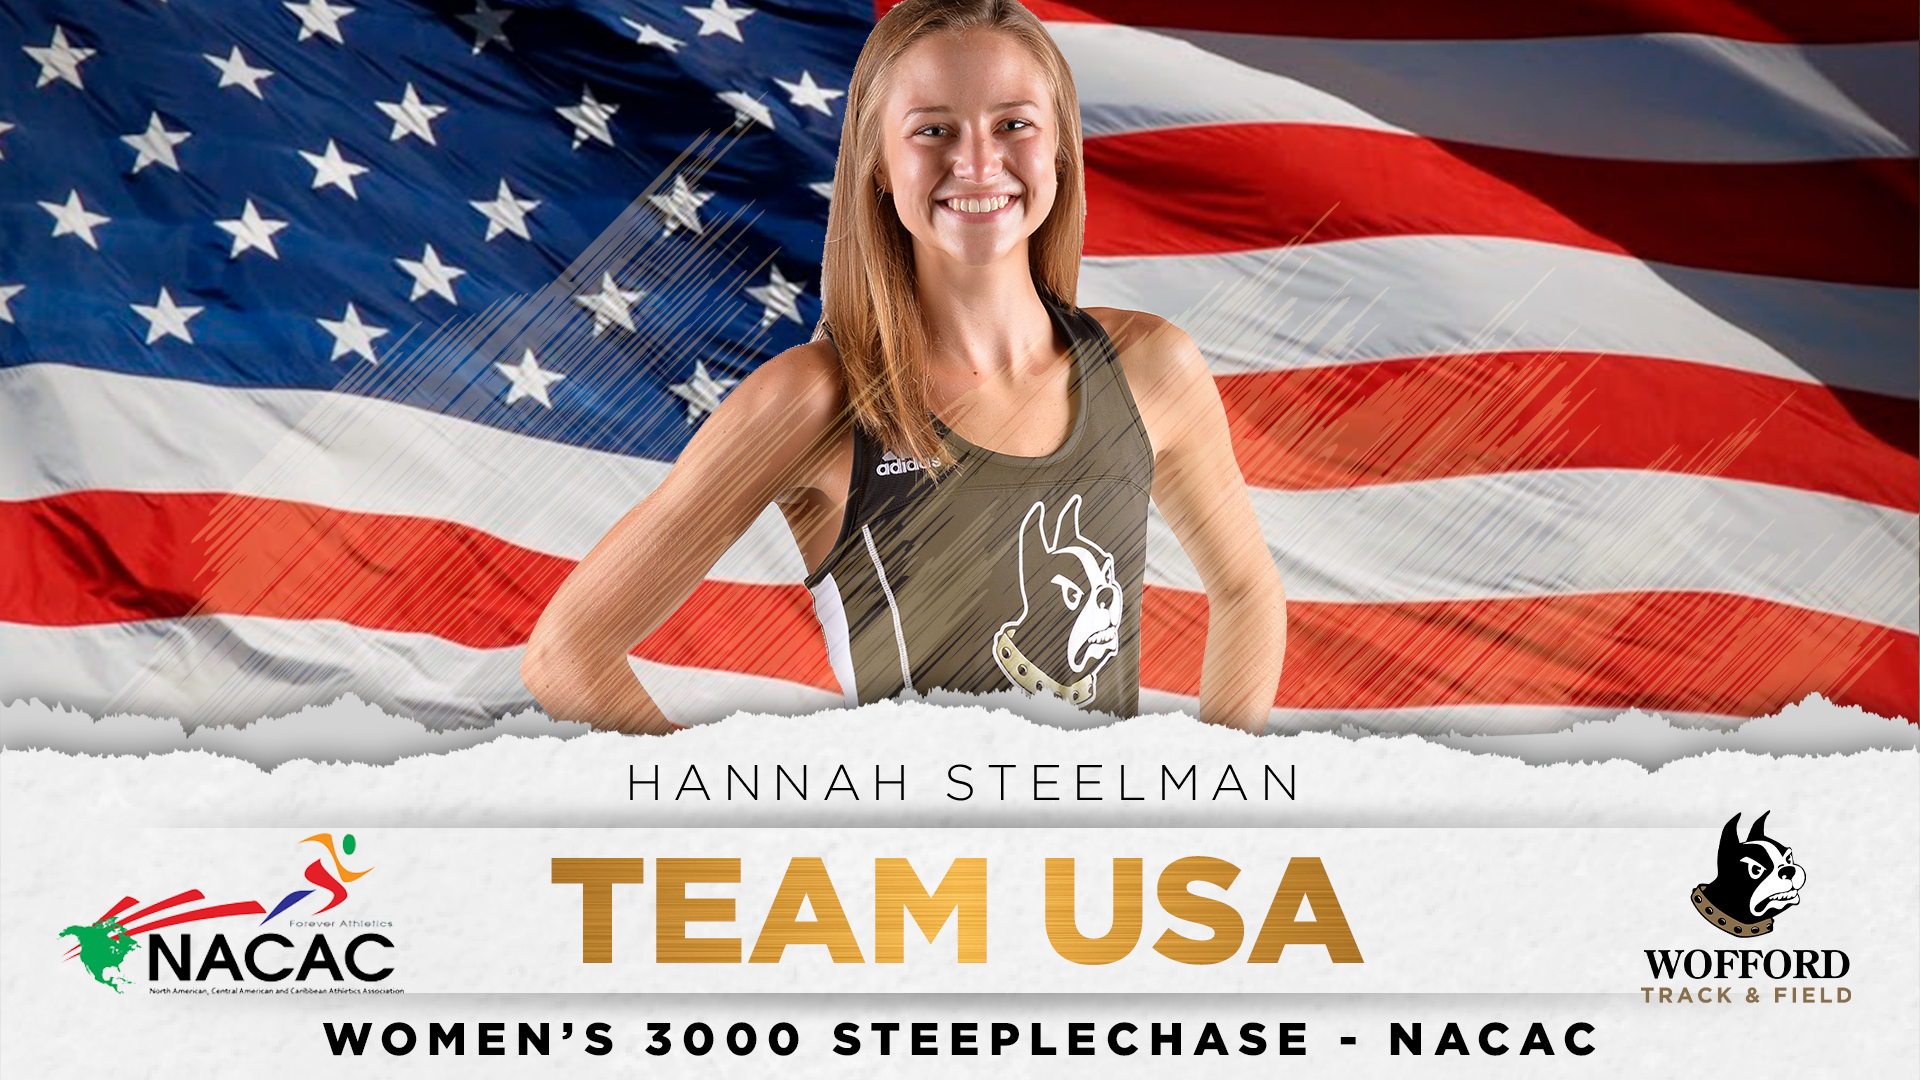 Hannah Steelman To Compete At 2019 NACAC For Team USA - Wofford